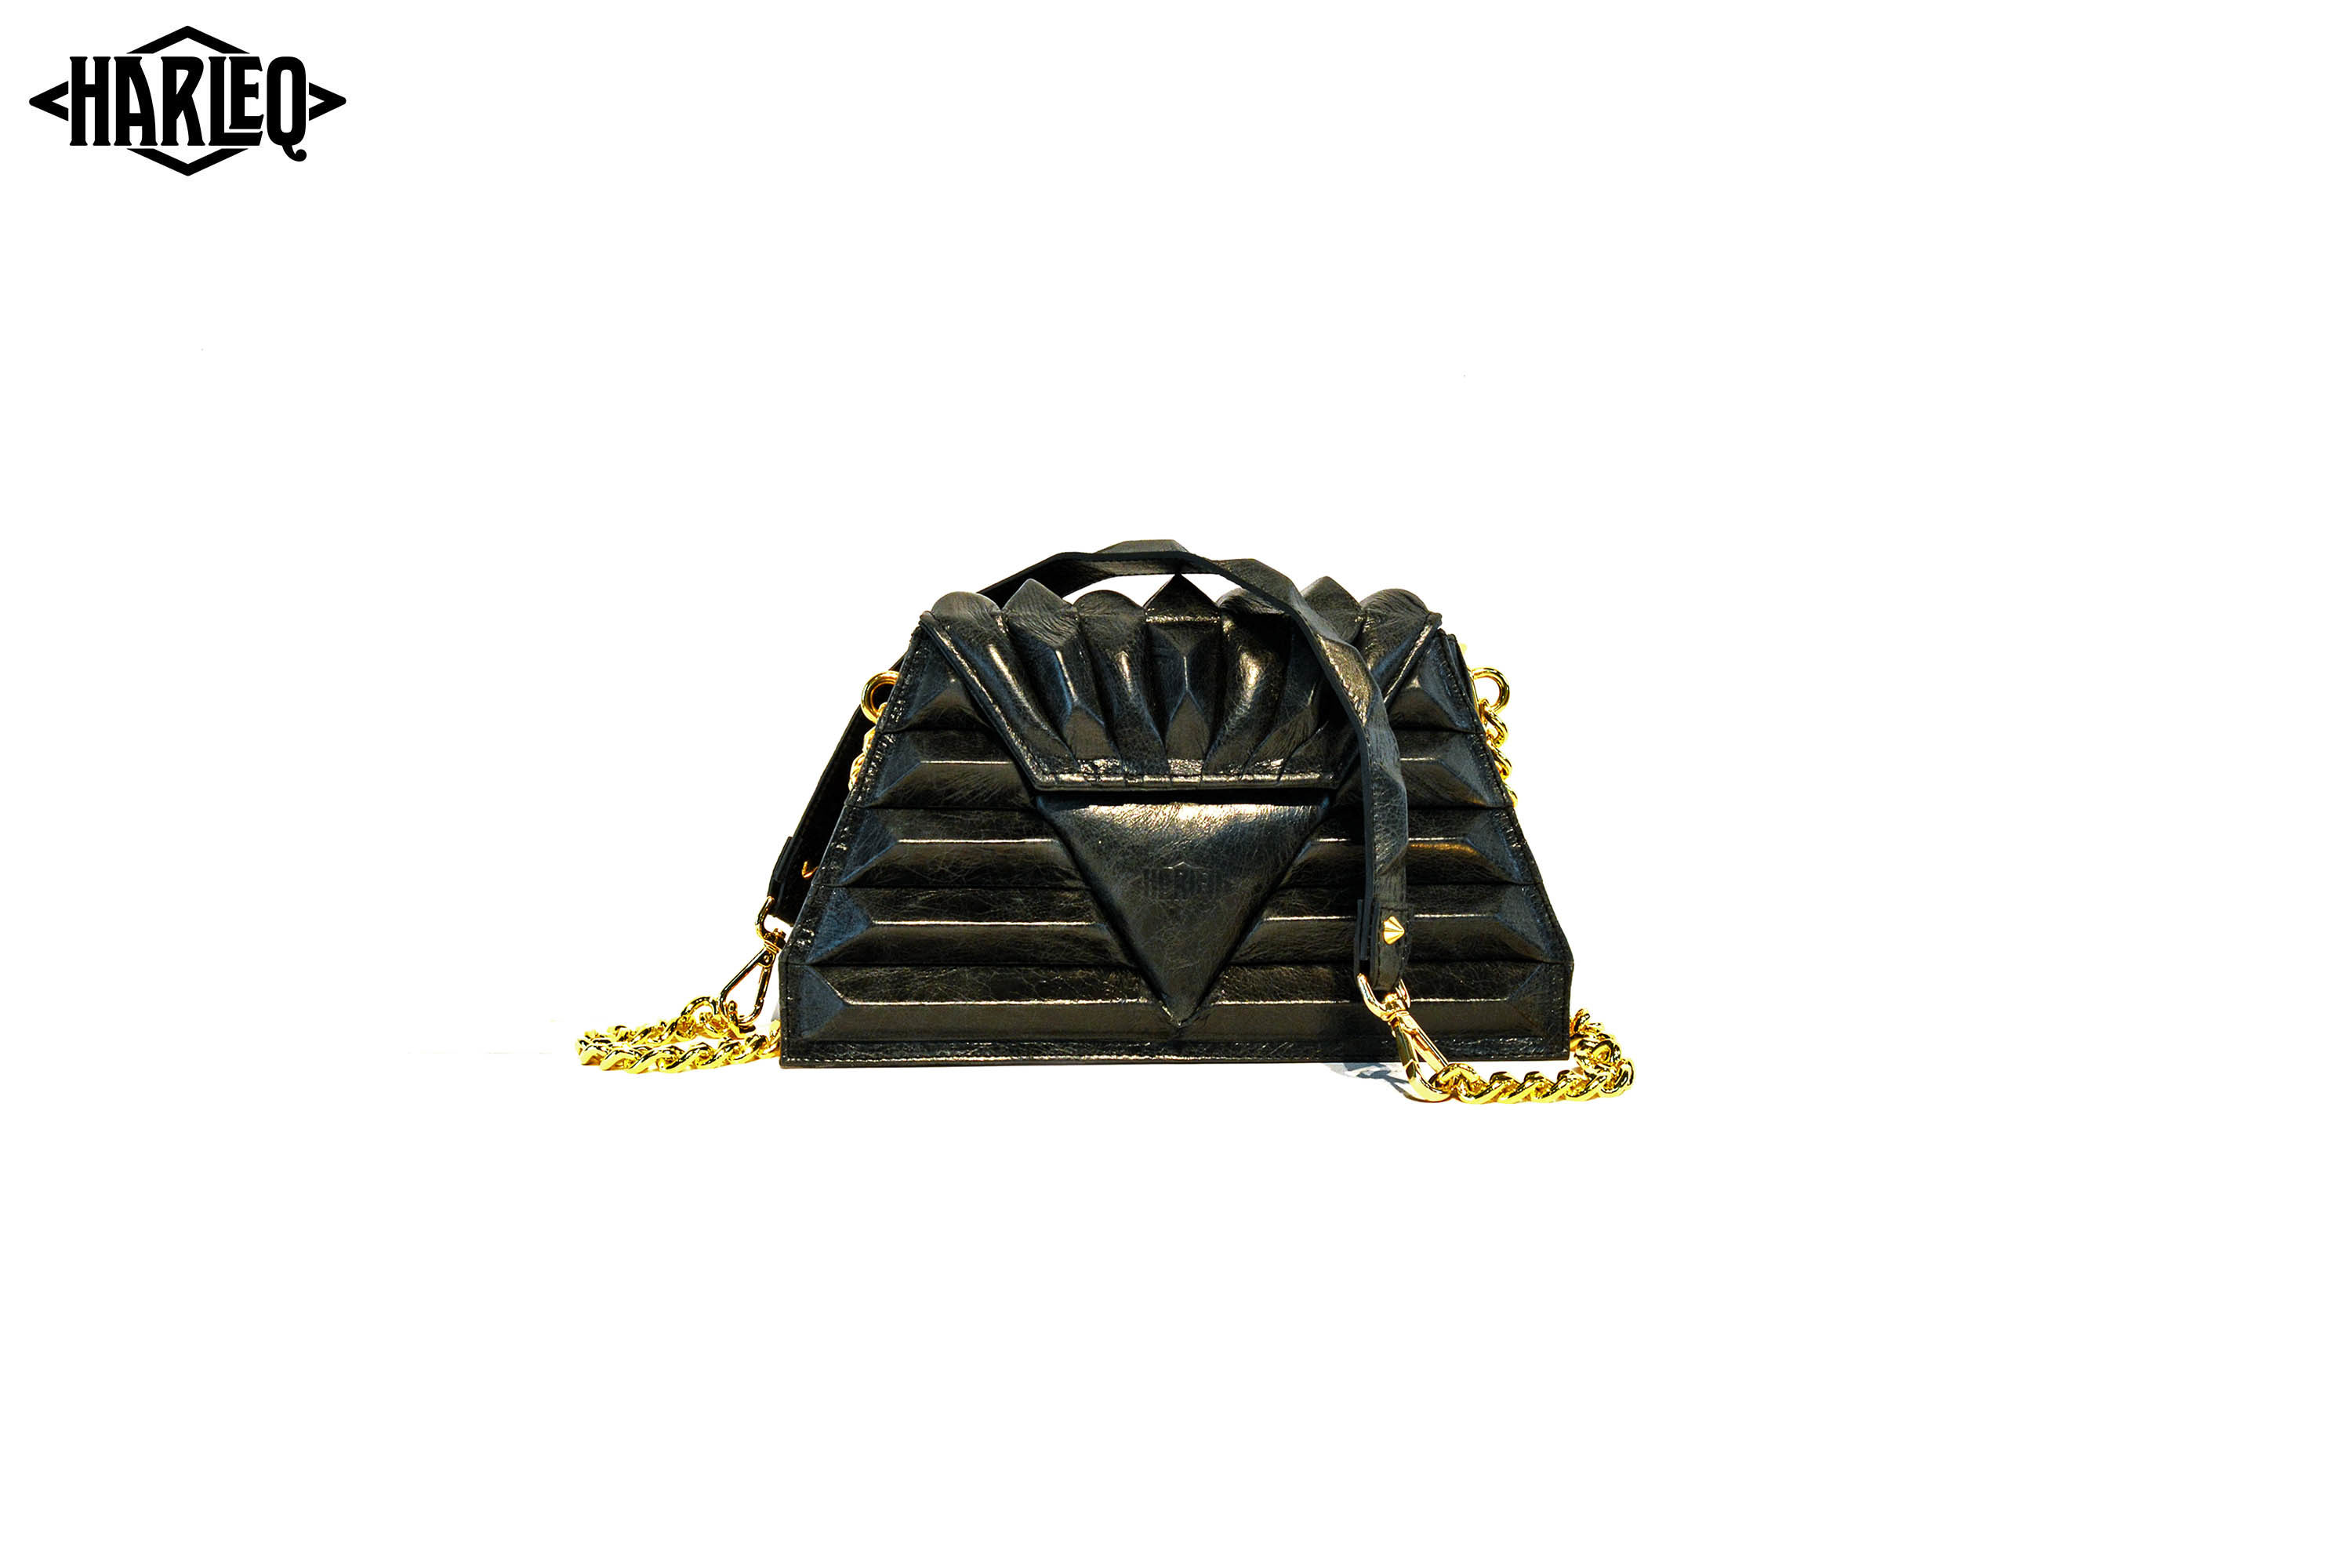 luxury-pochette-black-modern-harleq-sphinx